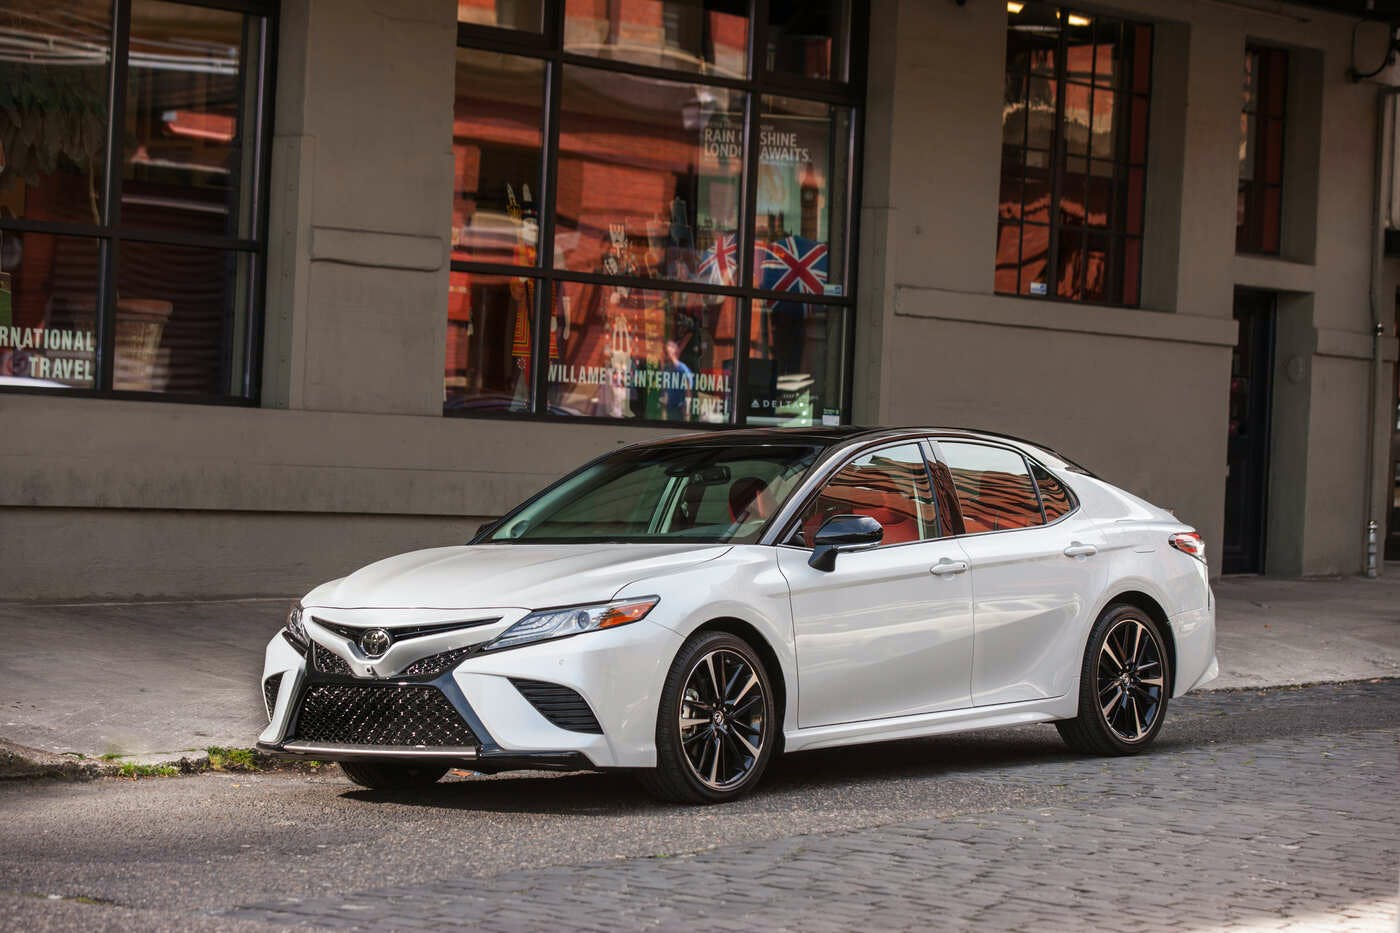 2020 Toyota Camry Reviews, Pricing & Pictures | TrueCar